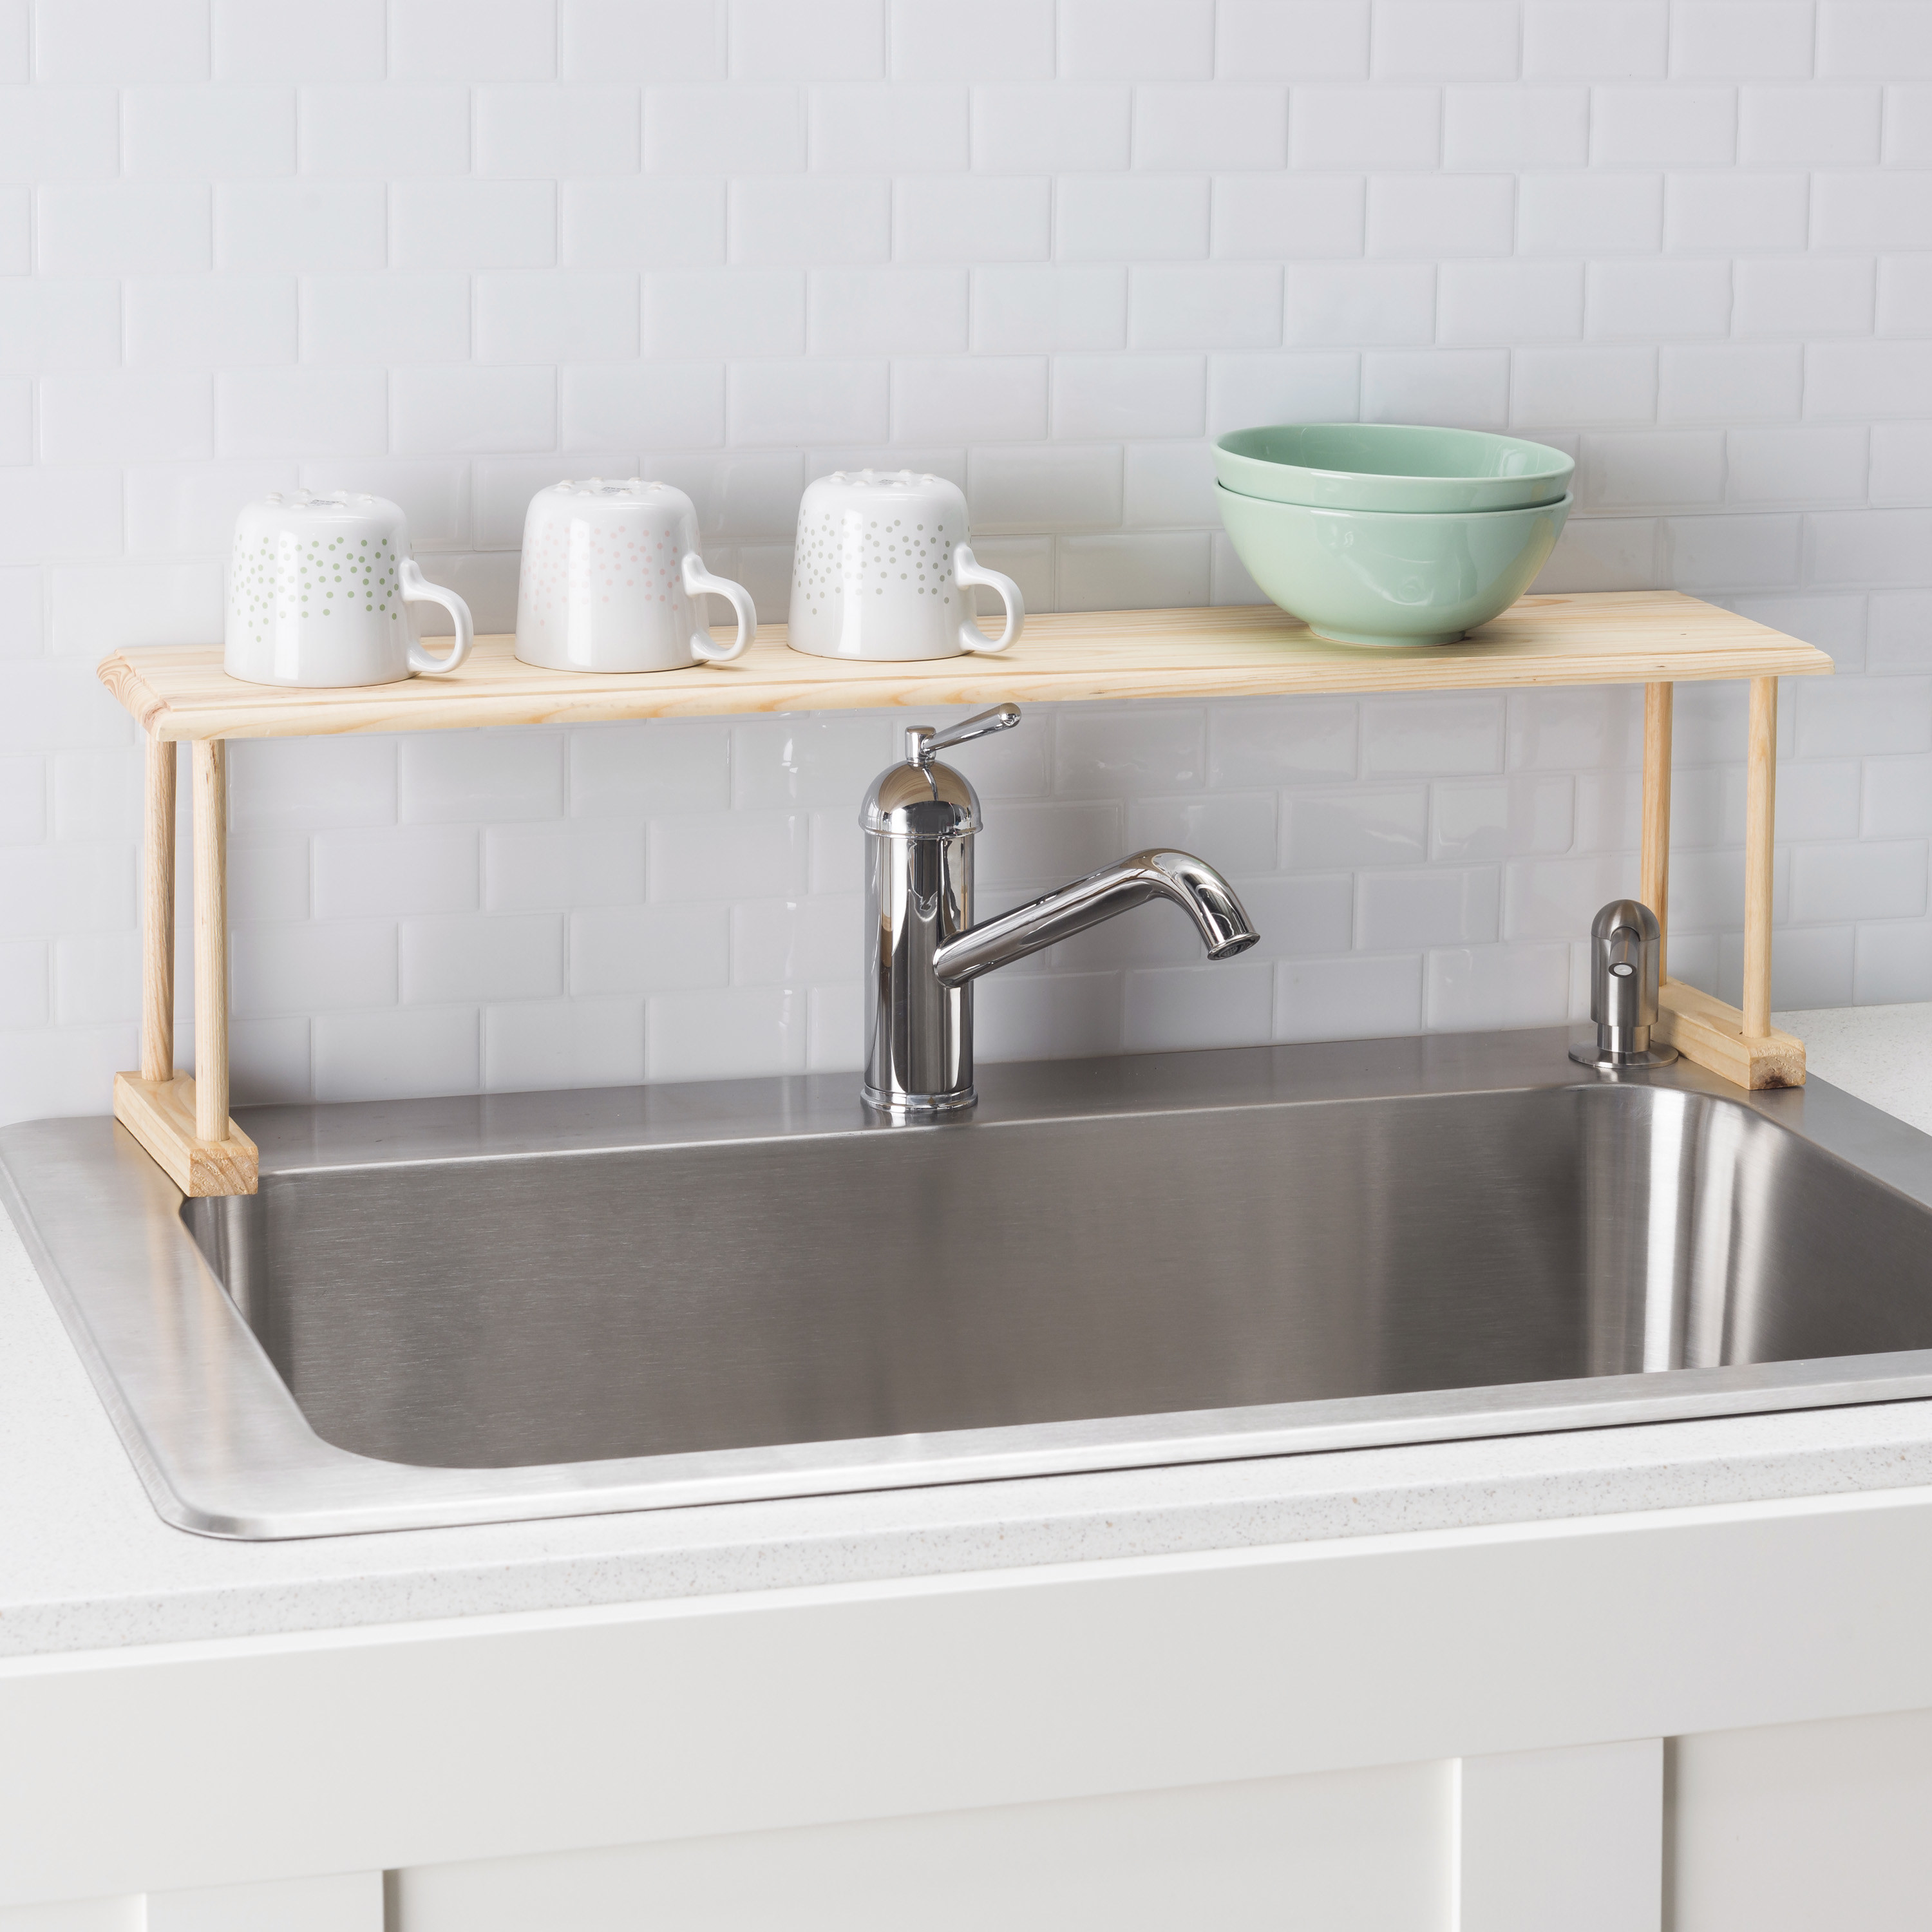 A light wood over the sink shelf with dishes on it